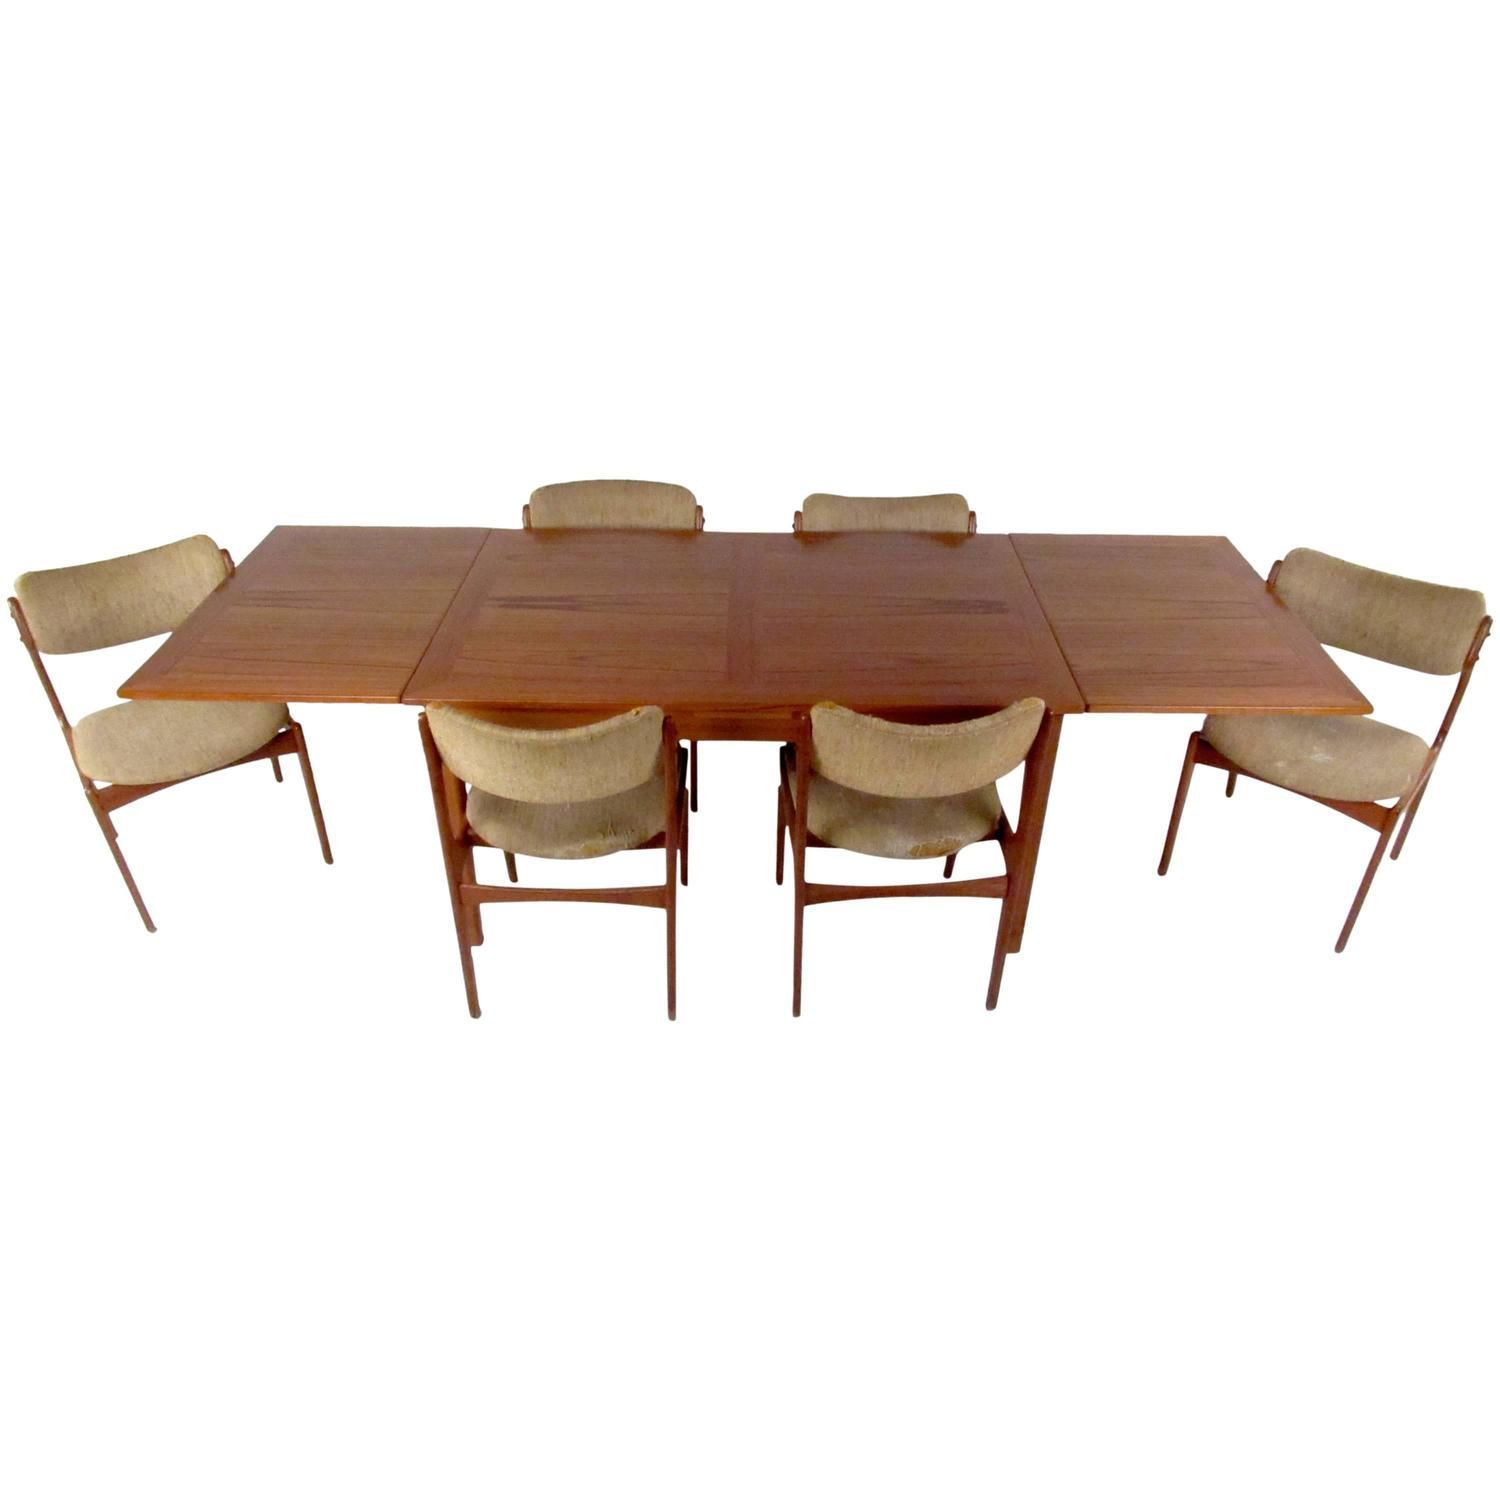 Skovby M¸belfabrik A S Dining Room Tables 8 For Sale at 1stdibs